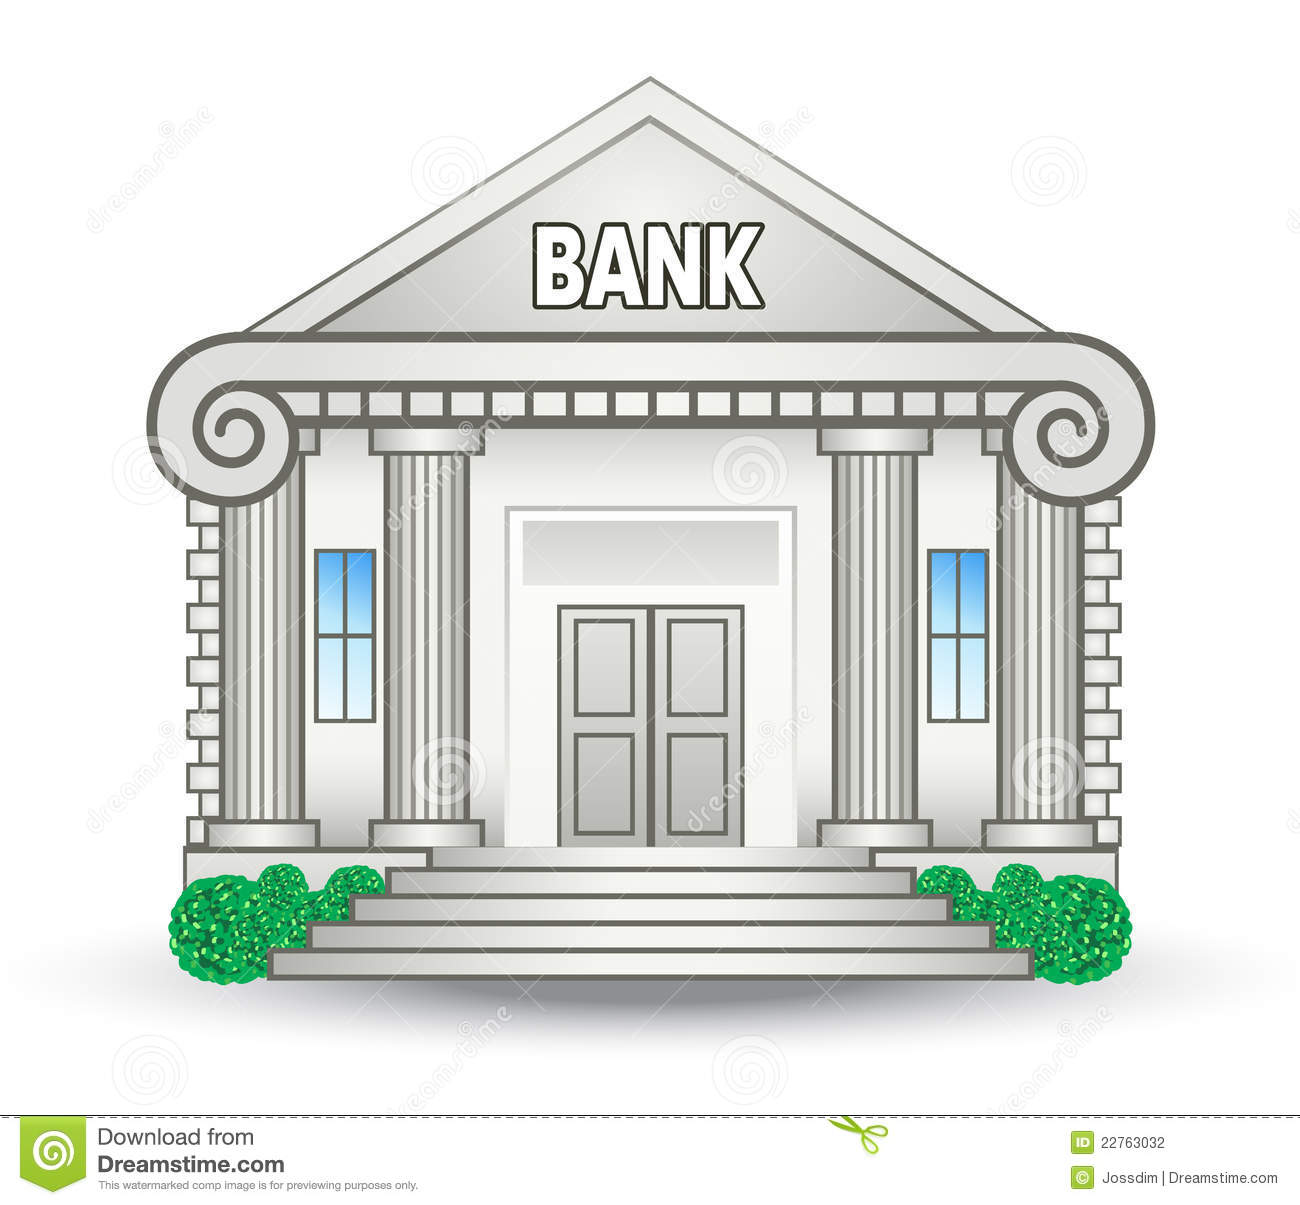 clipart bank holiday - photo #8